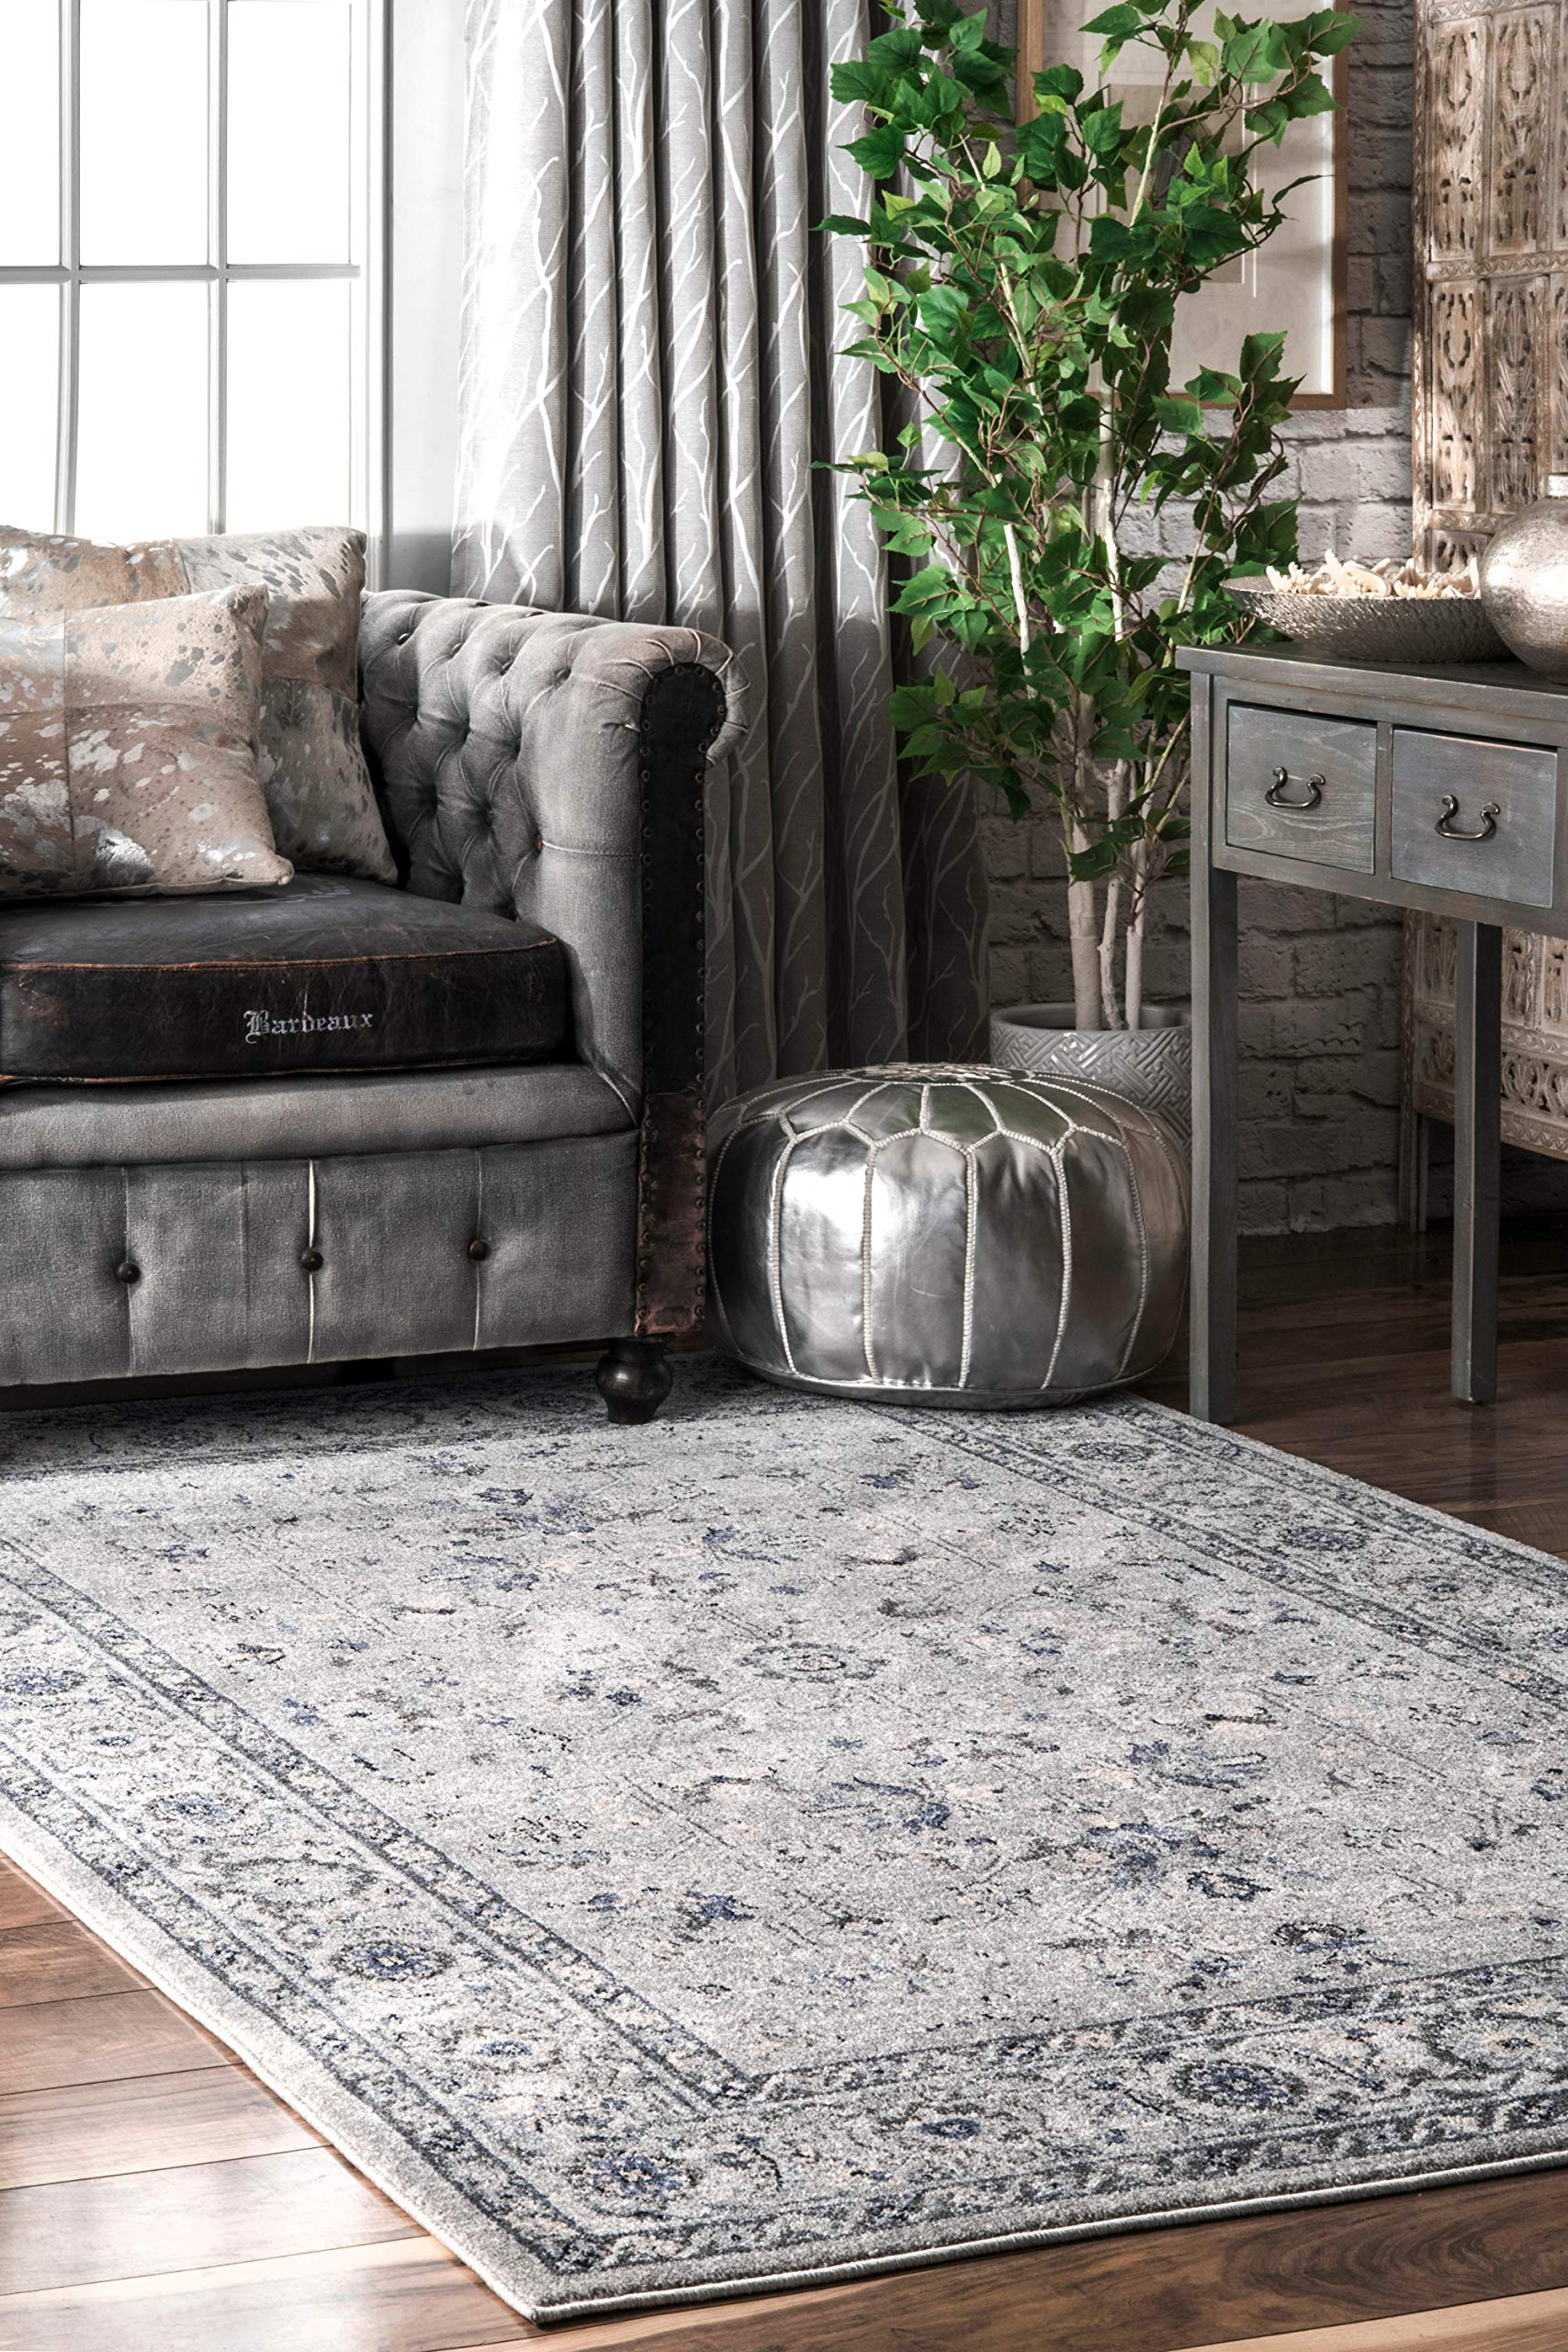 "nuLOOM Vera Distressed Florid Area Rug, 6' 7"" x 9', Grey - Material: 100% Polypropylene Weave: Machine Made Made in Turkey - living-room-soft-furnishings, living-room, area-rugs - 91dNNbJ%2BOJL -"